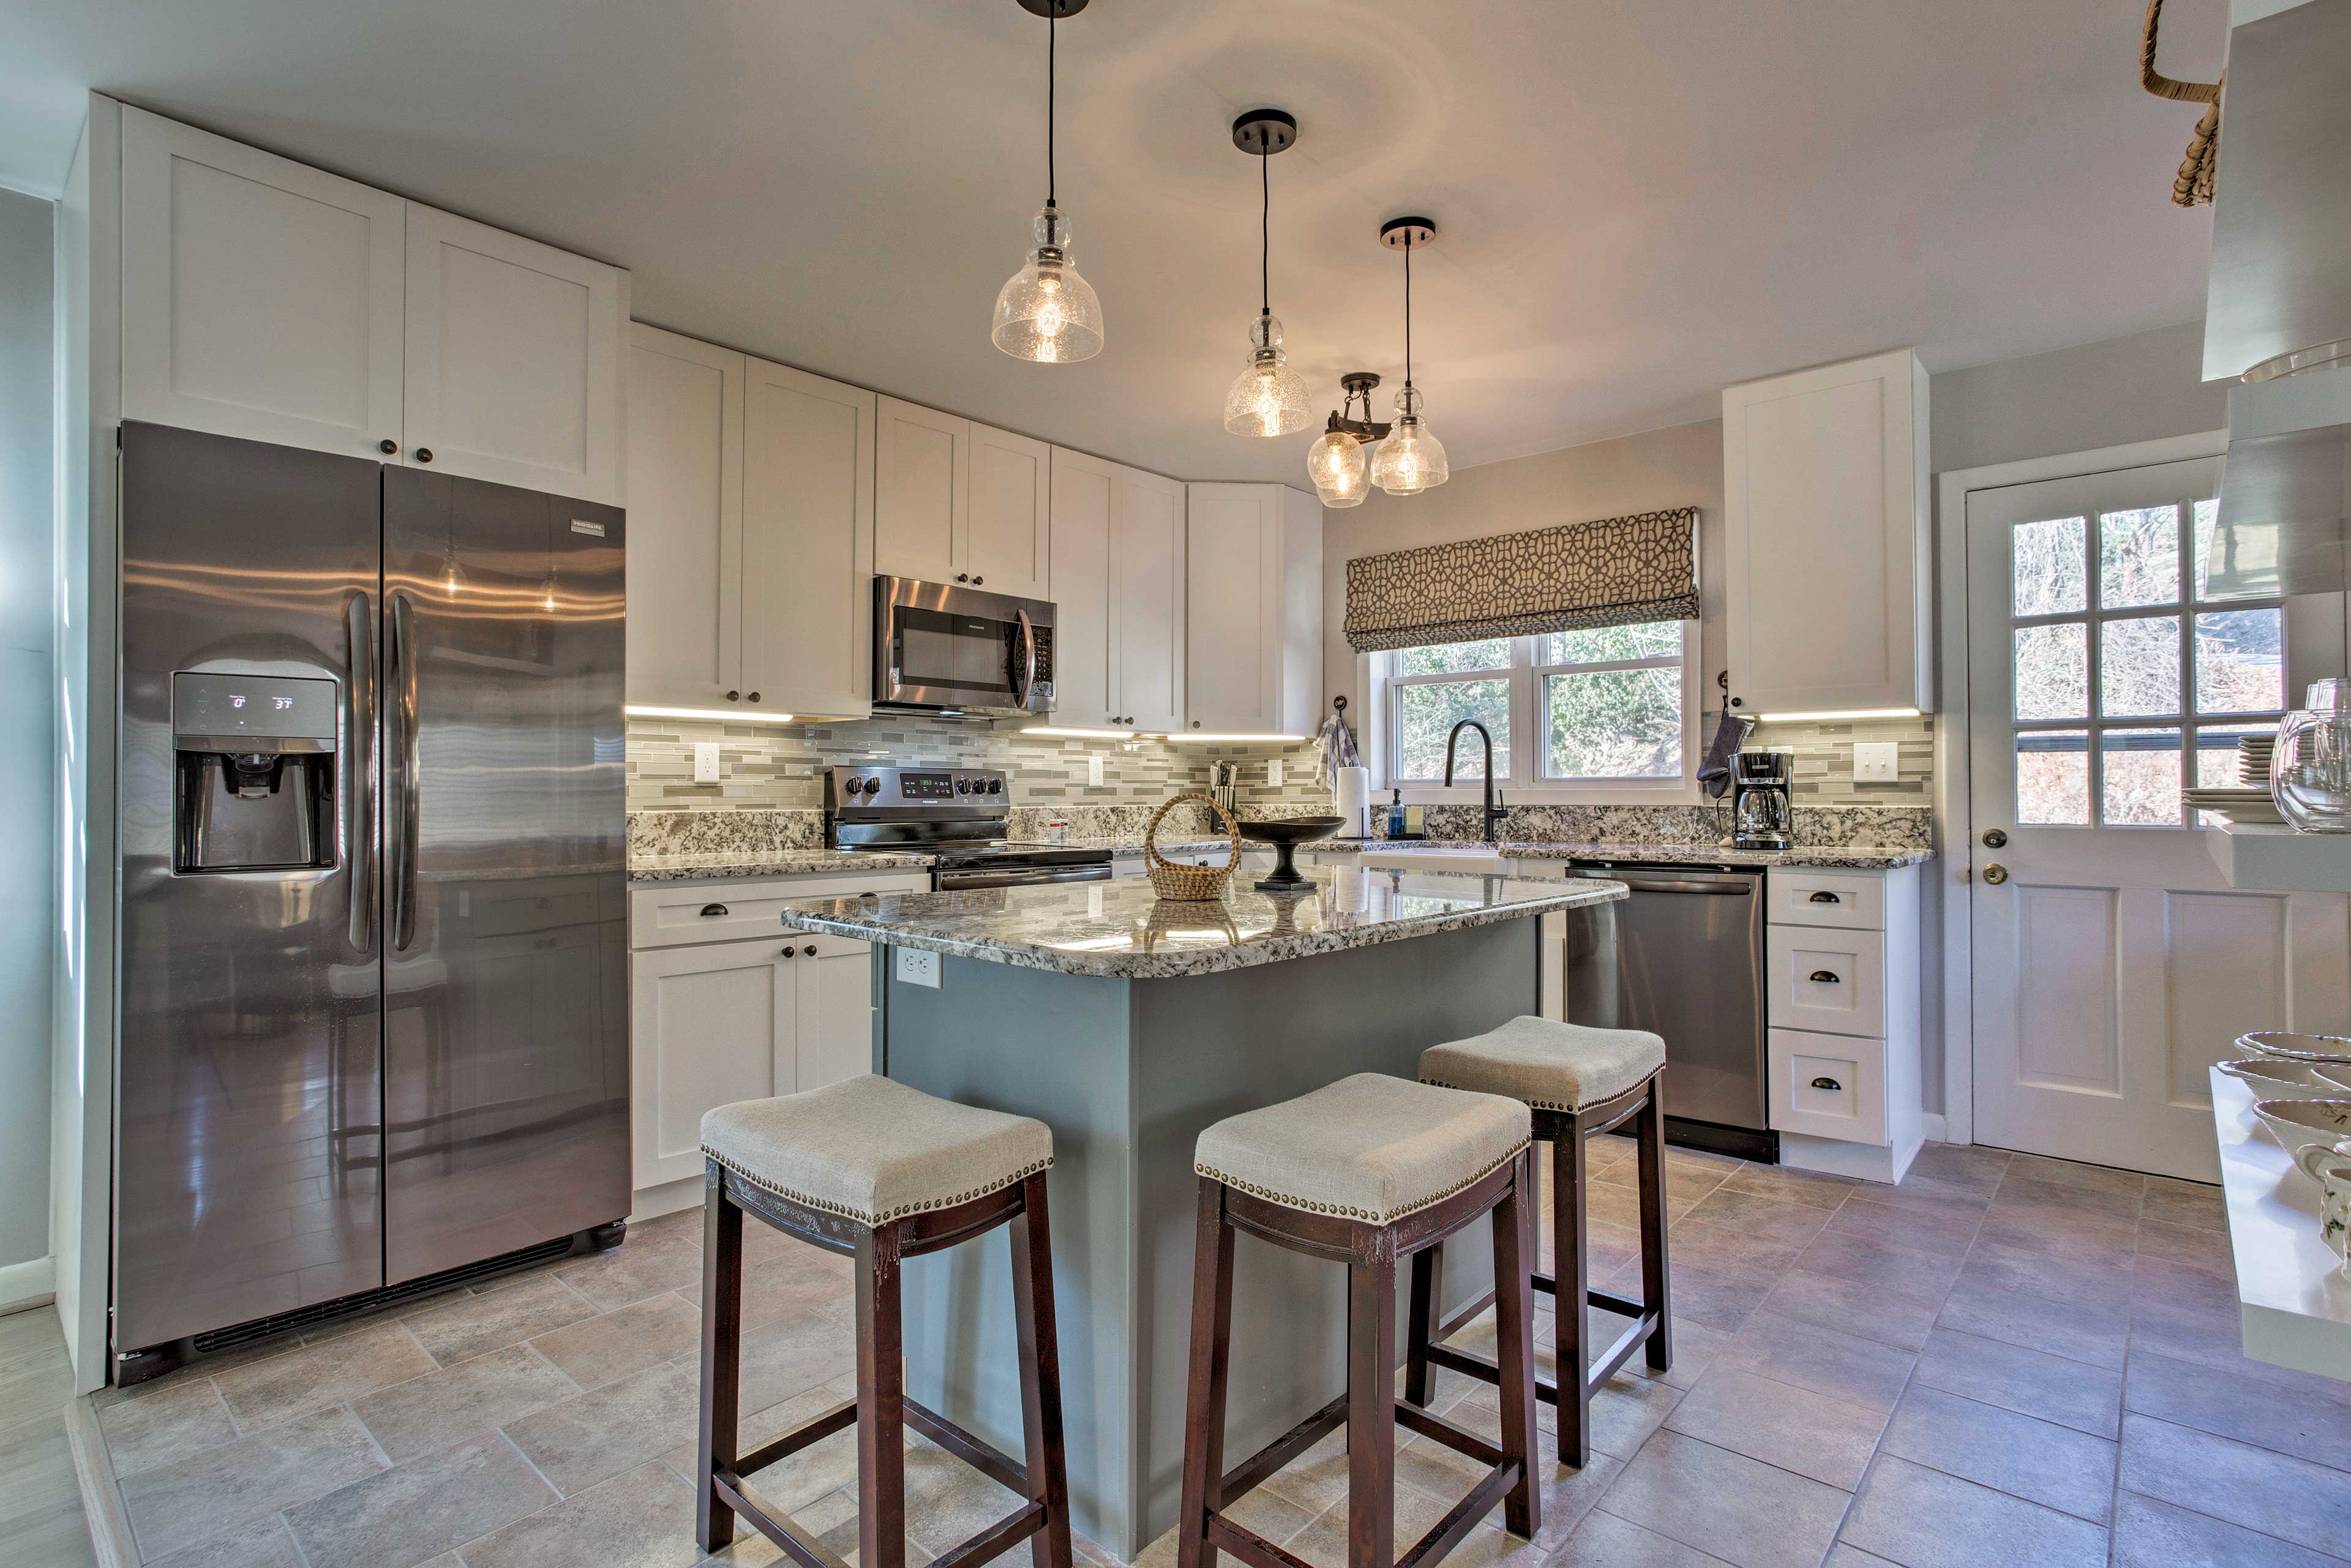 The space boasts stainless steel appliances and granite countertops.